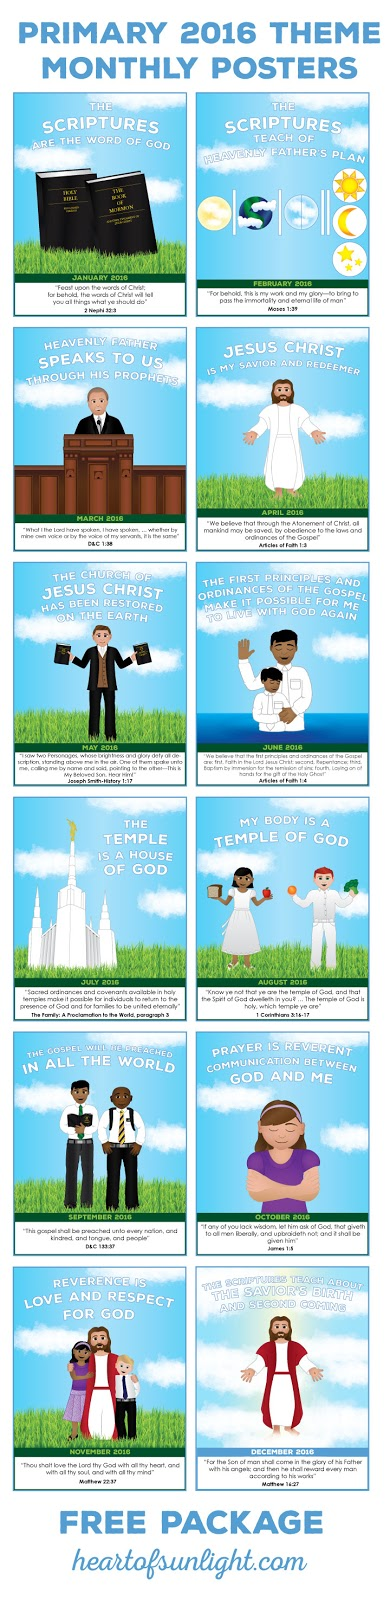 FREE 2016 Primary Theme Poster and Binder Package   @heartofsunlight ...